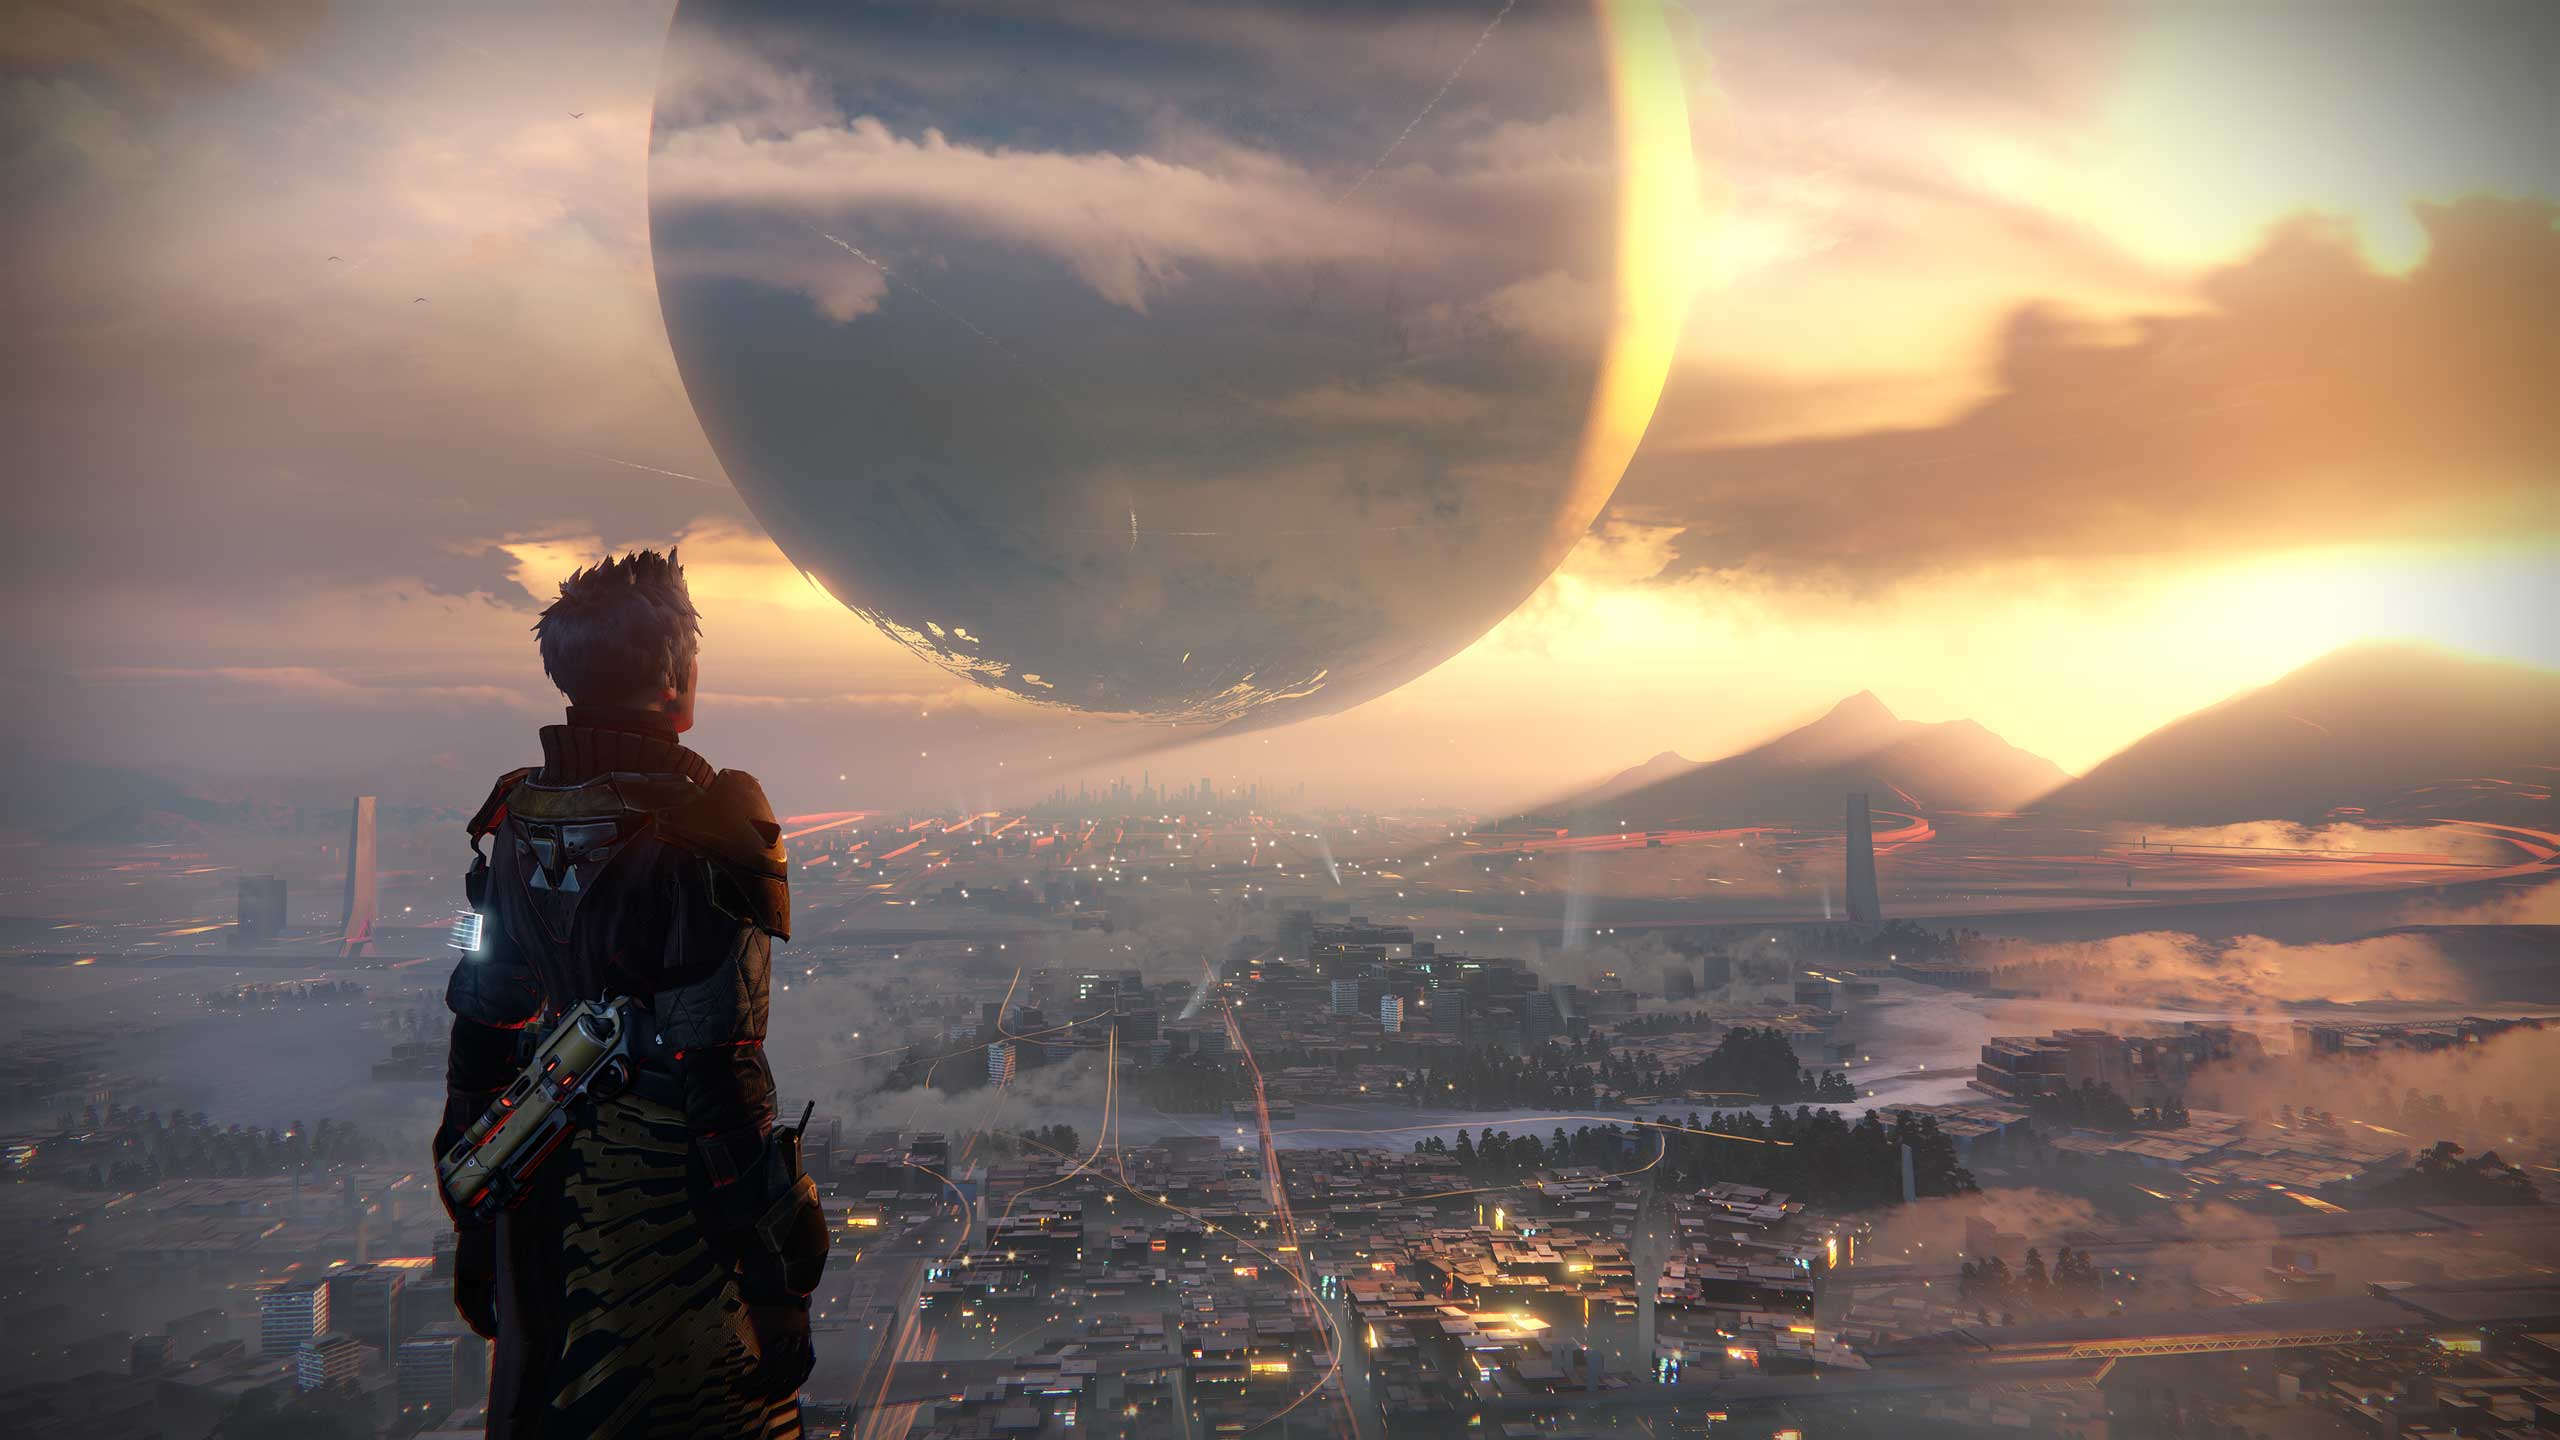 <strong>Destiny</strong>                                                                      Built from scratch by ex-Halo studio Bungie, <i>Destiny</i>'s game engine was designed to scale across the next decade, says the studio.